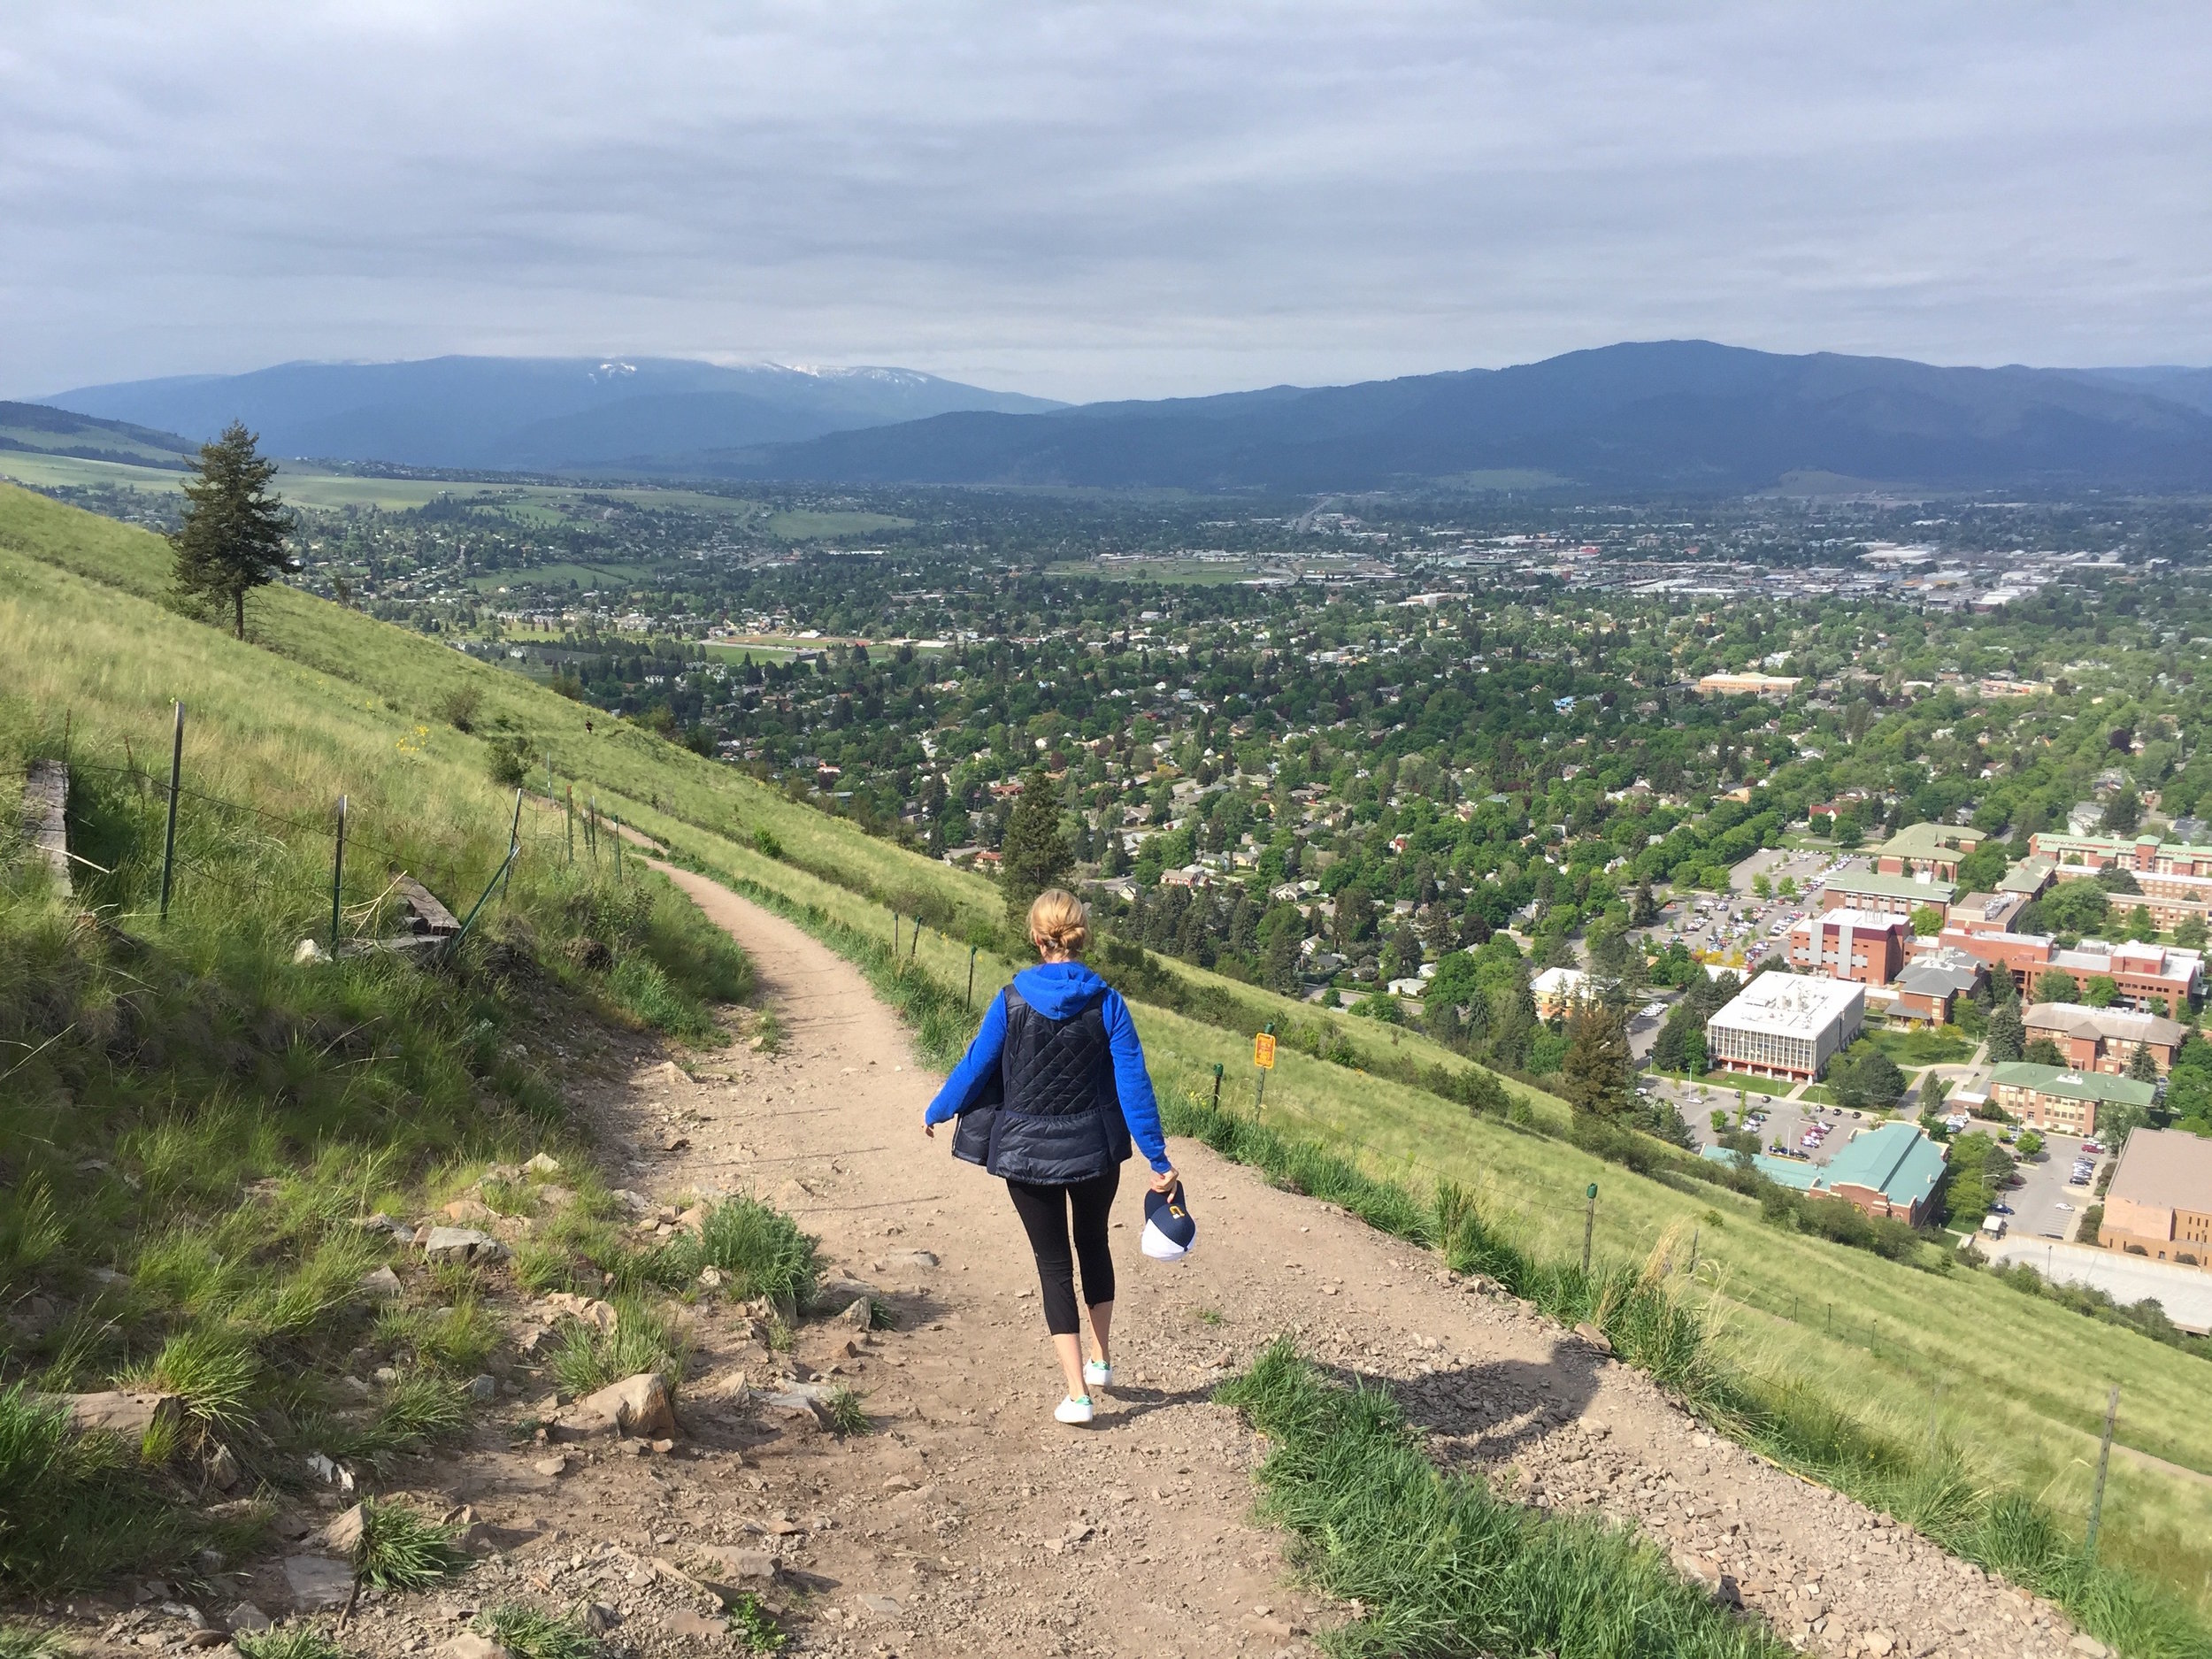 The hour-long hike gently zigzags up the hill, making the trail ideal for an easy-breezy climb or a heart-racing run.